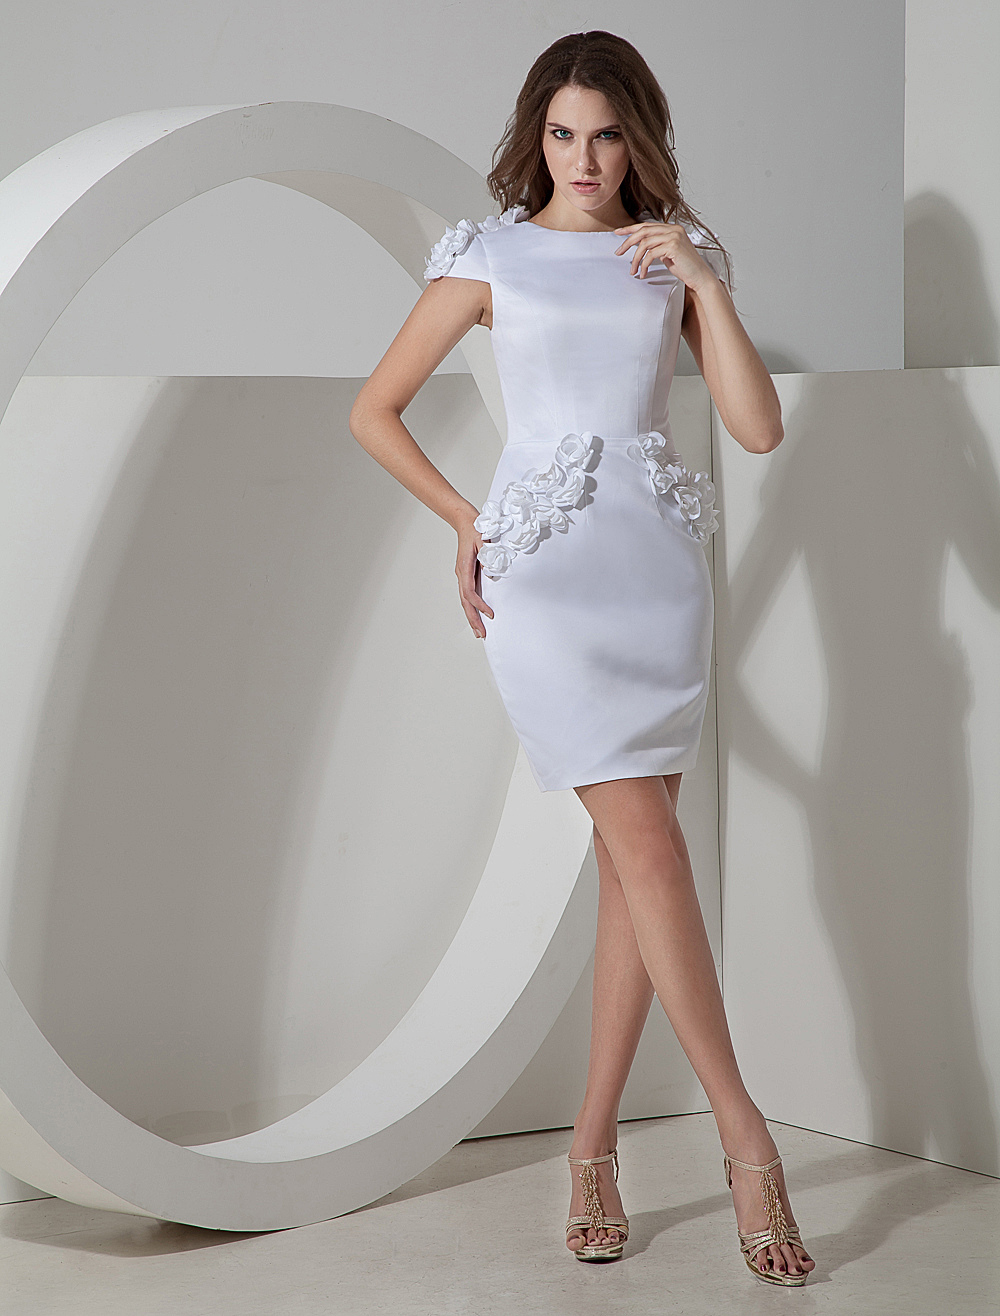 Elegant White Applique Sheath Cocktail Dress